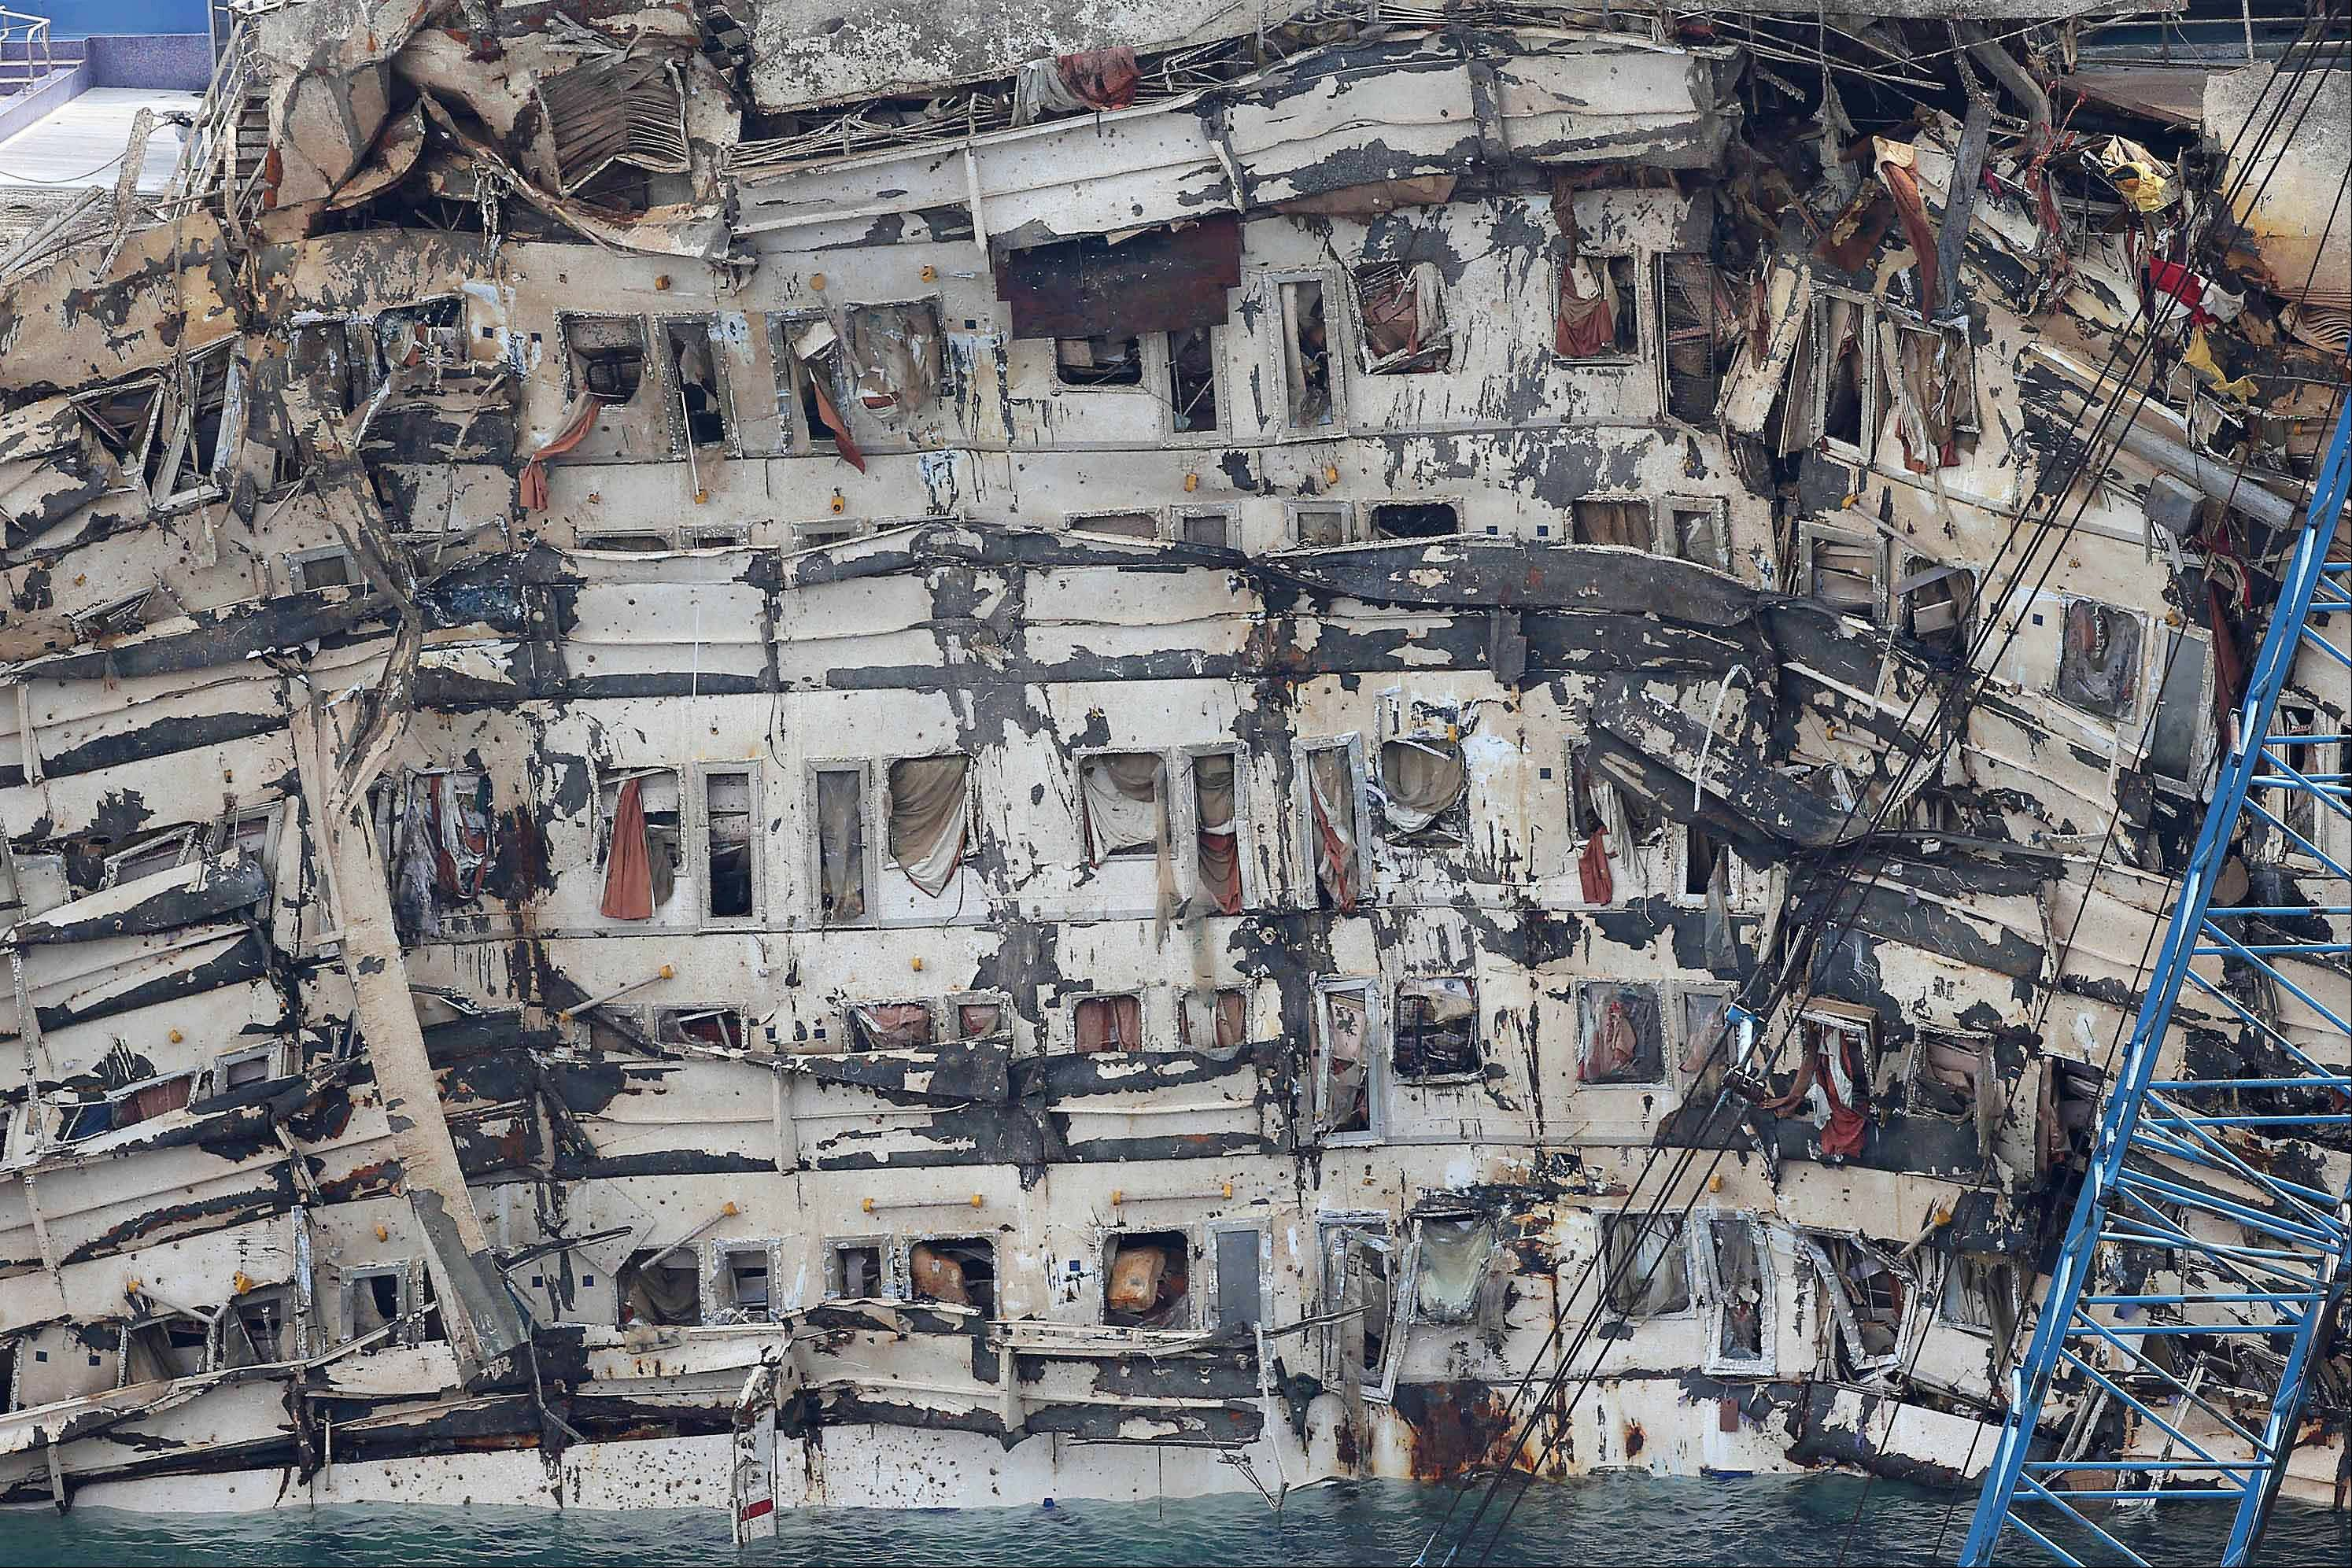 "A detail of the previously submerged side of the Costa Concordia is seen after it was lifted upright, on the Tuscan Island of Giglio, Italy, Tuesday, Sept. 17, 2013. The crippled cruise ship was pulled completely upright early Tuesday after a complicated, 19-hour operation to wrench it from its side where it capsized last year off Tuscany, with officials declaring it a ""perfect"" end to a daring and unprecedented engineering feat."